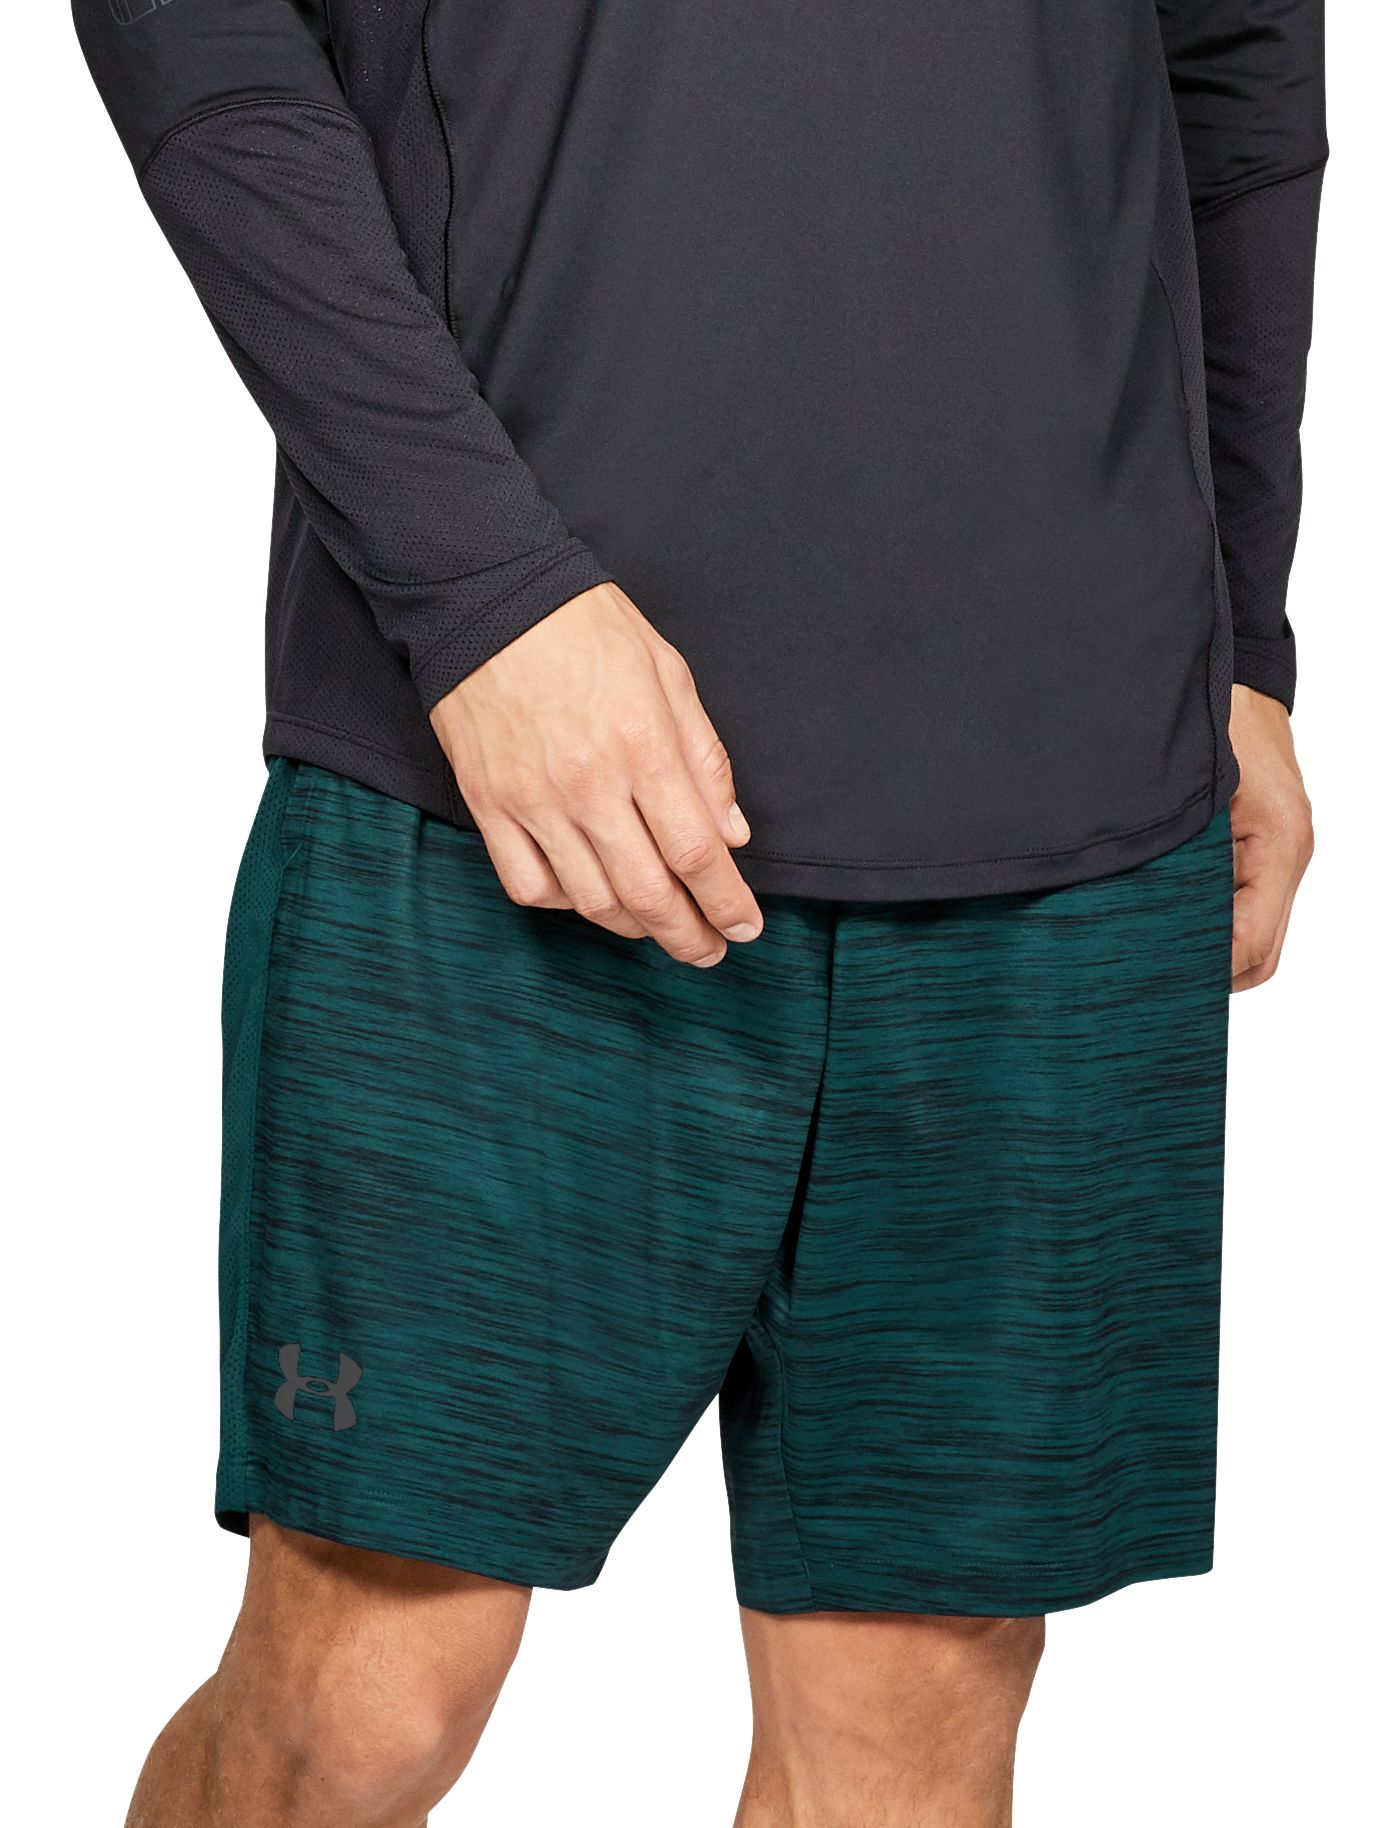 Under Armour Men's MK-1 Twist Print Shorts